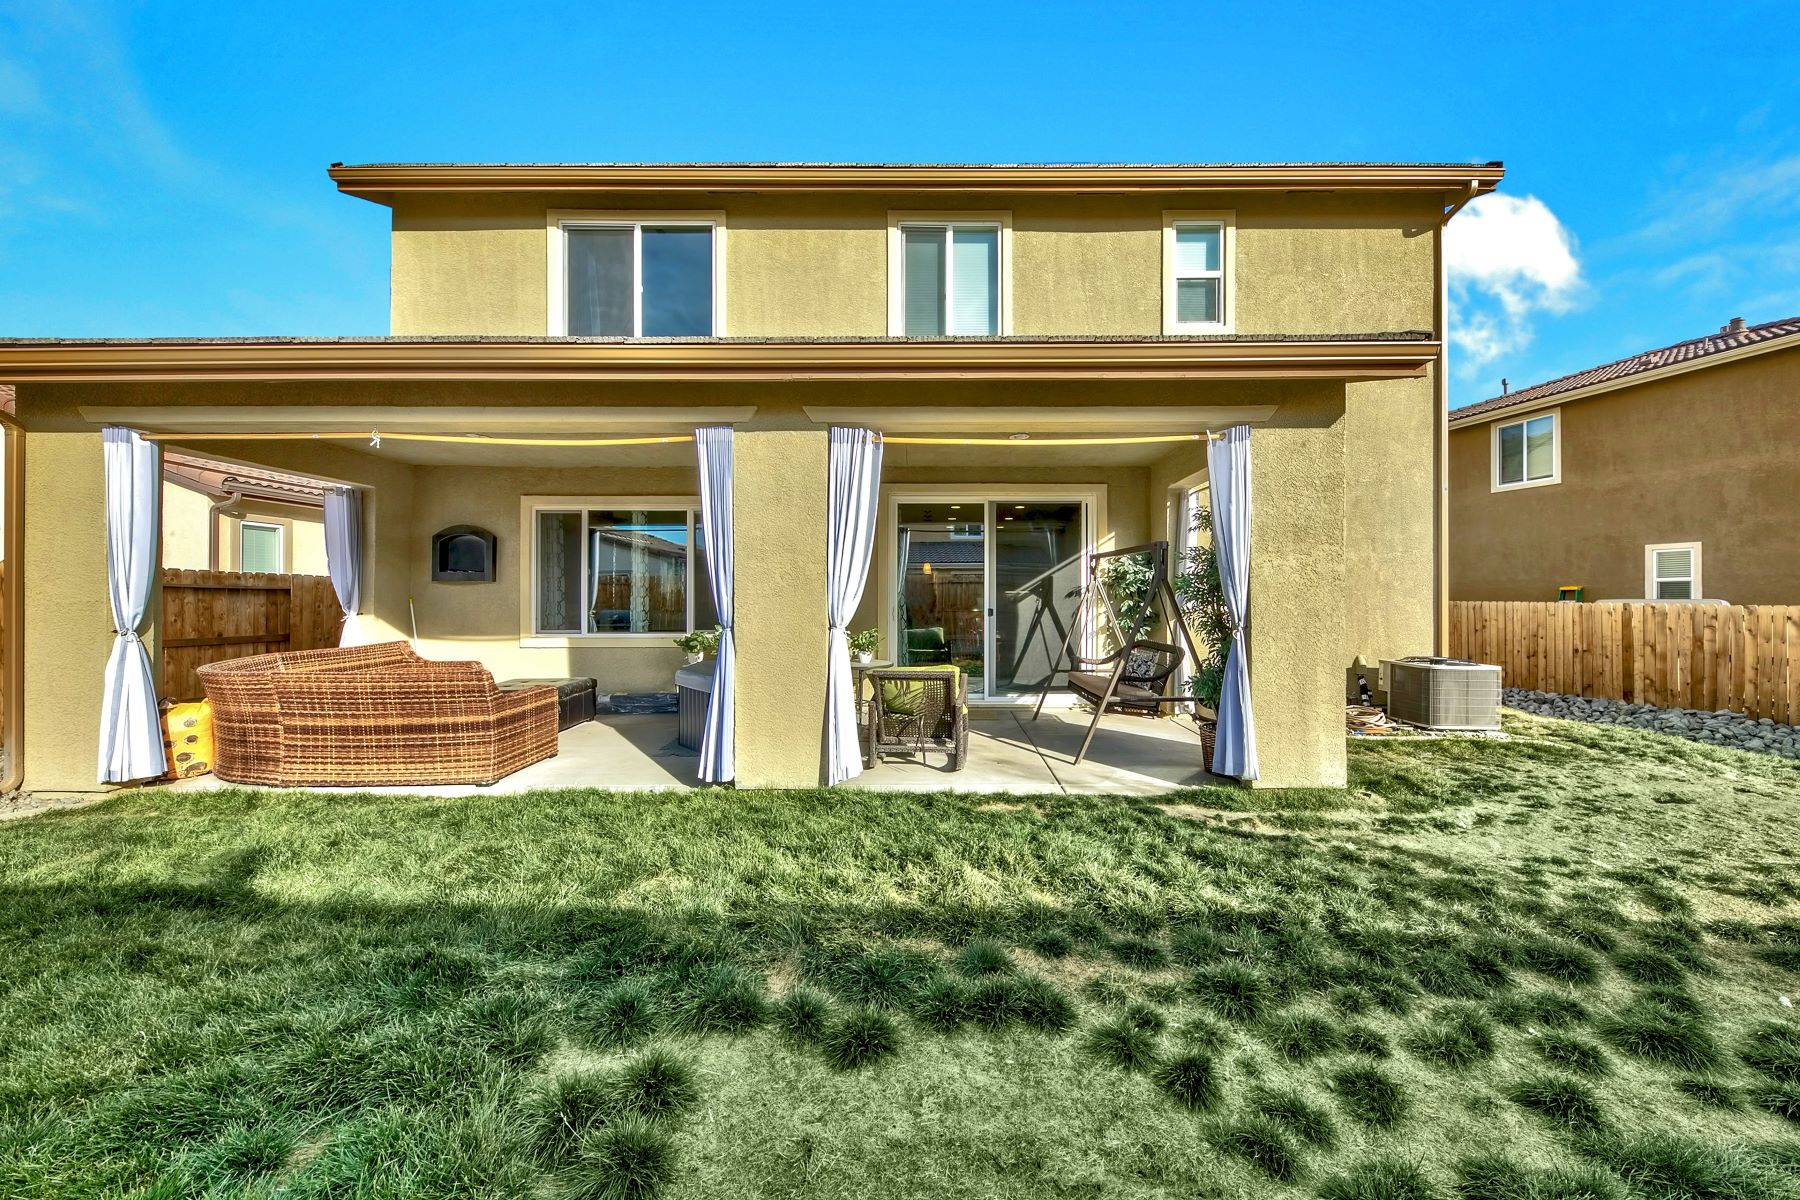 Additional photo for property listing at 2024 Long Meadow Drive, Reno NV 89521 2024 Long Meadow Drive Reno, Nevada 89521 United States